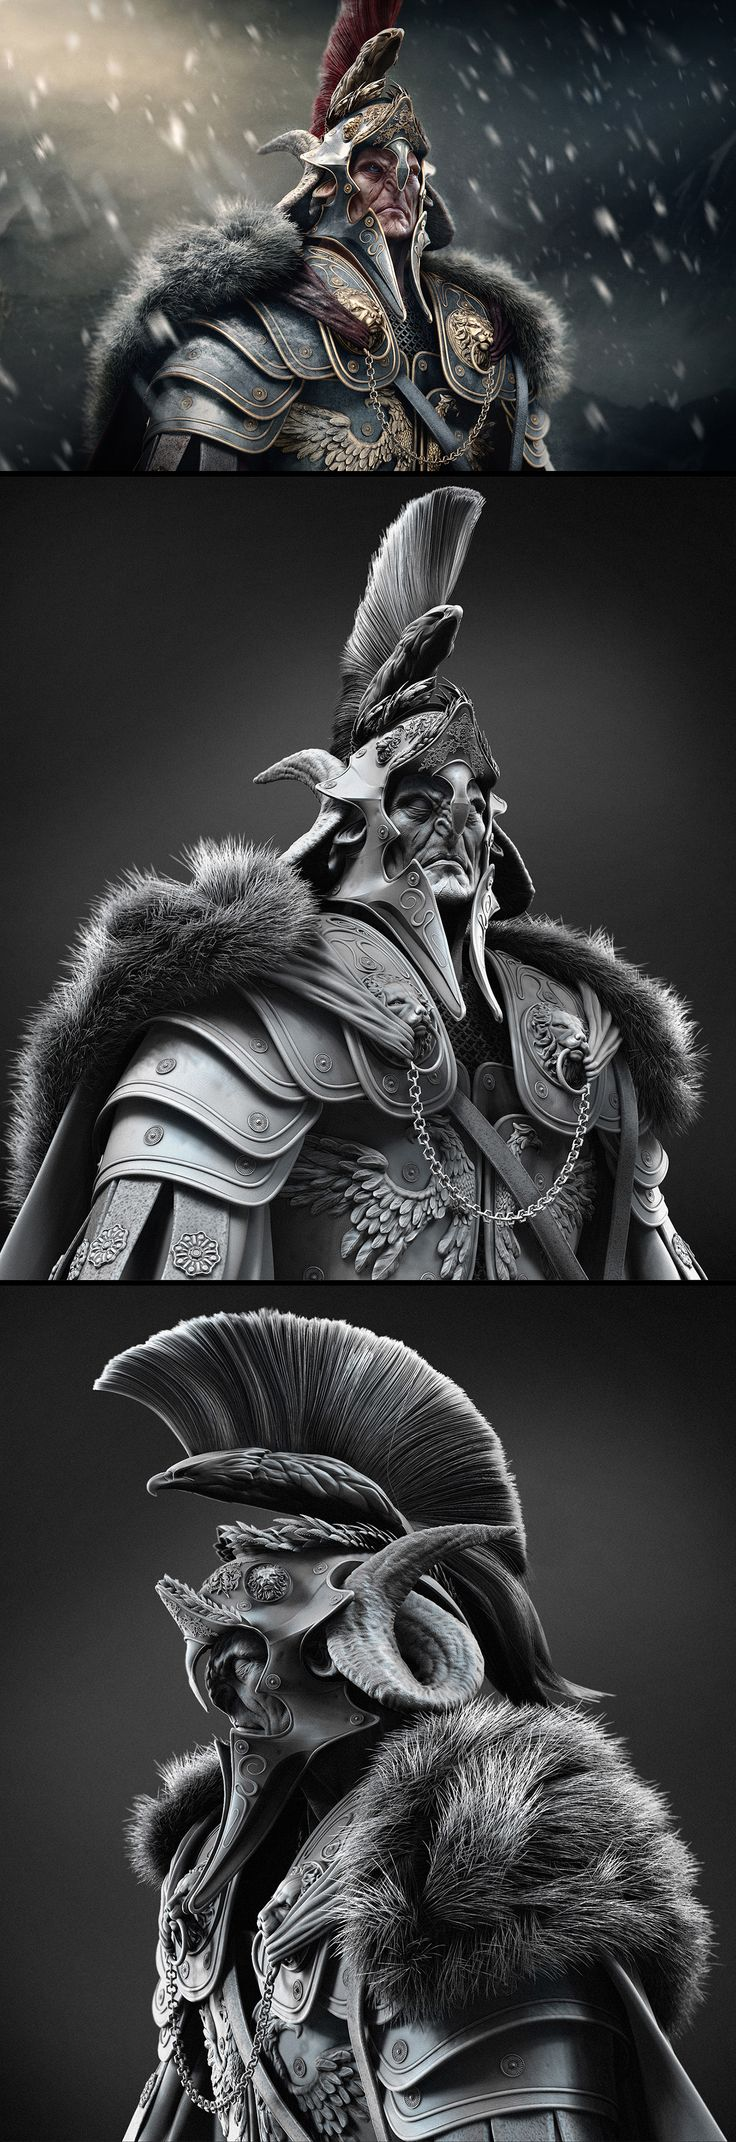 Cmivfx Zbrush Character Concept Design : Best zbrush images on pinterest